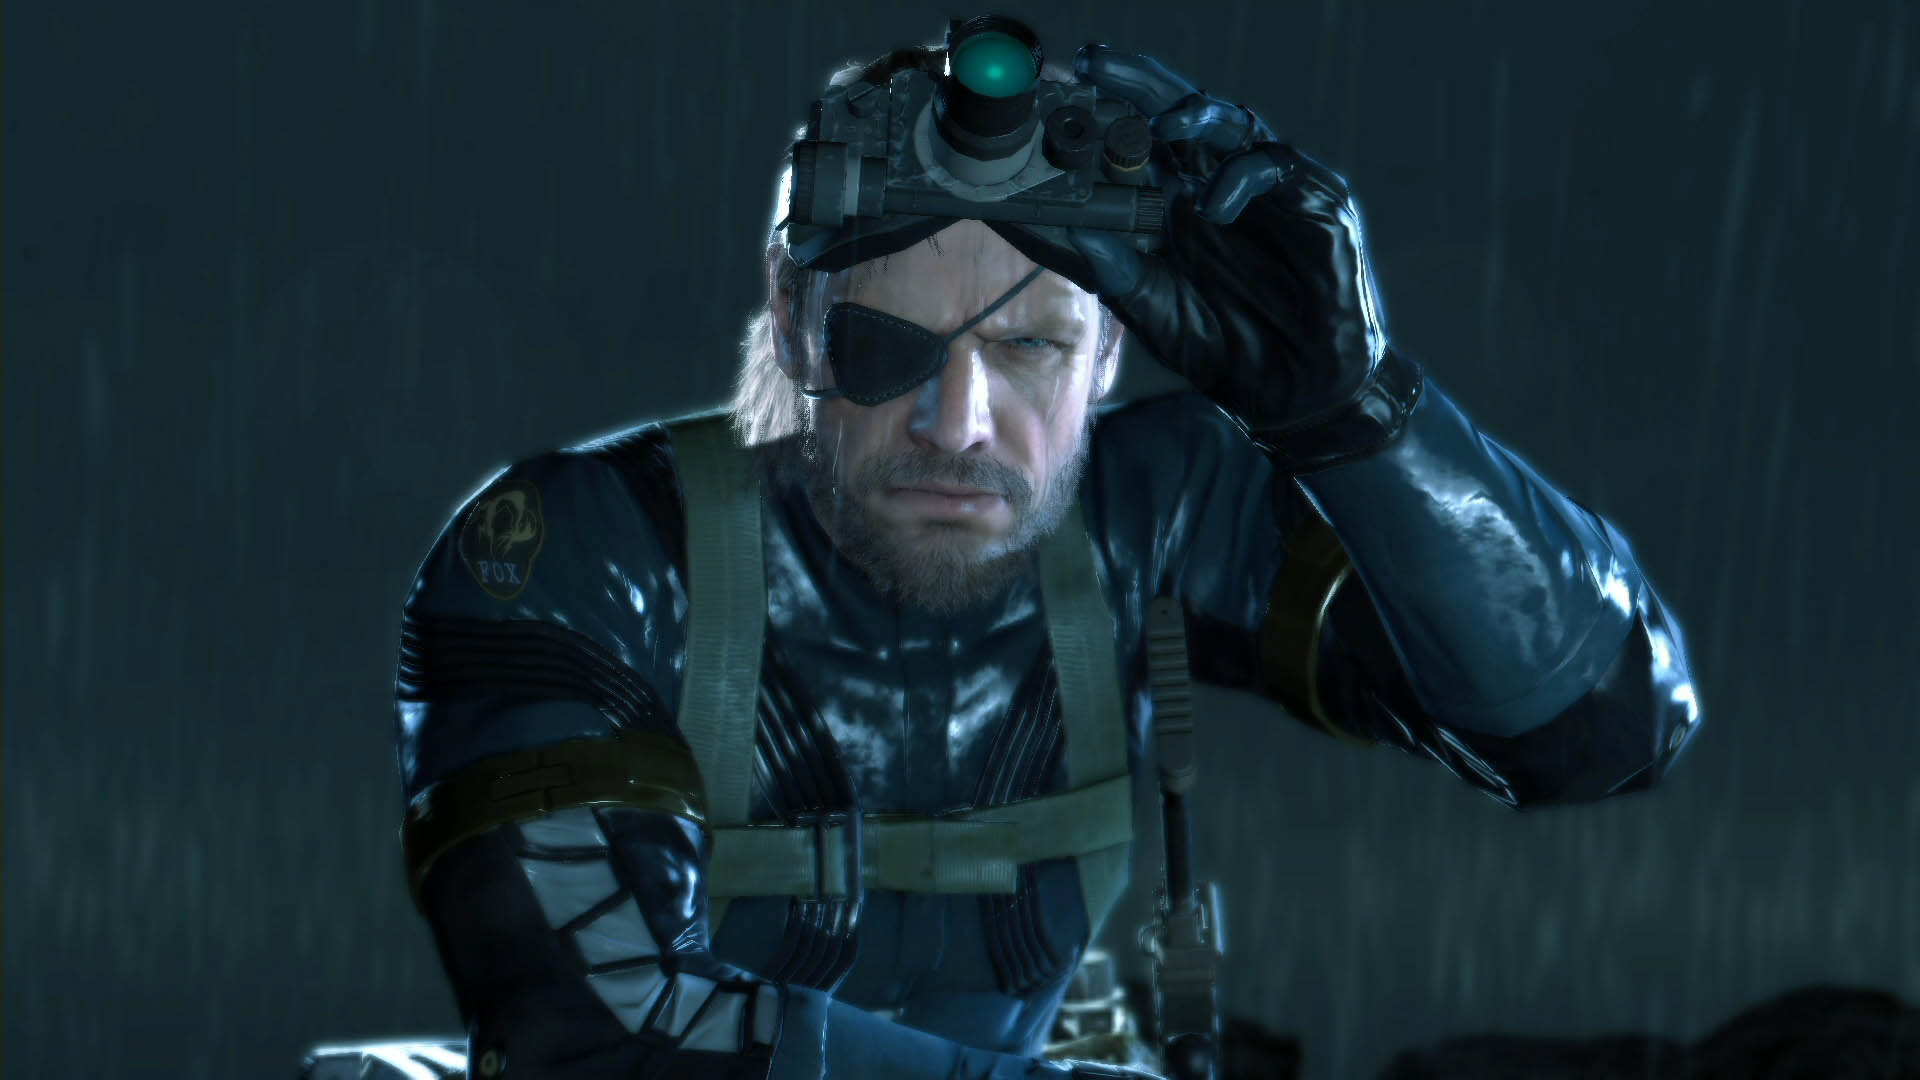 Free Download Big Boss Venom Snake With Night Vision Goggles Metal